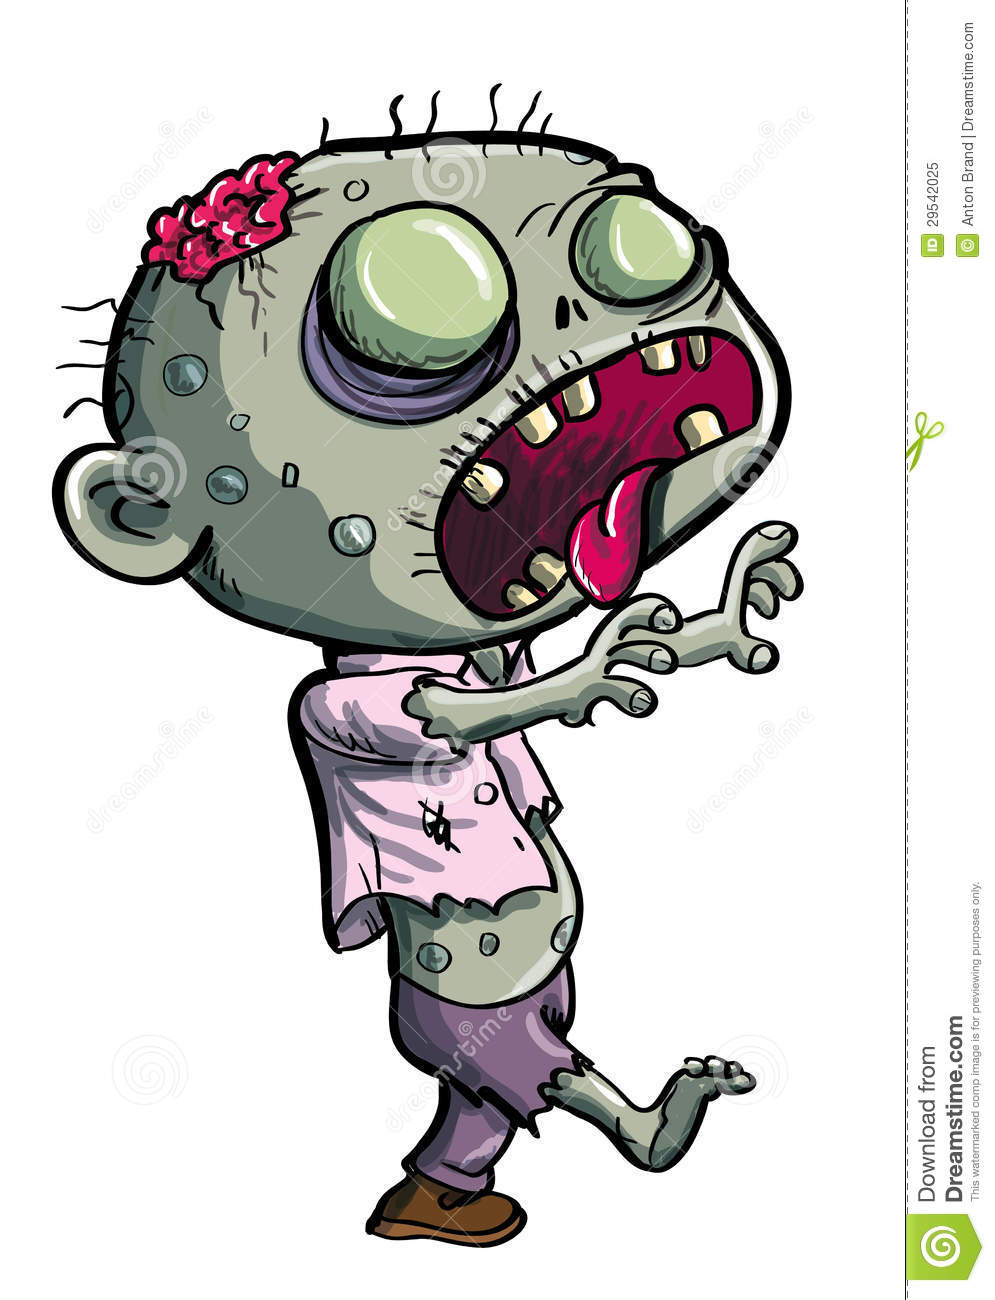 free zombie clipart images - photo #34